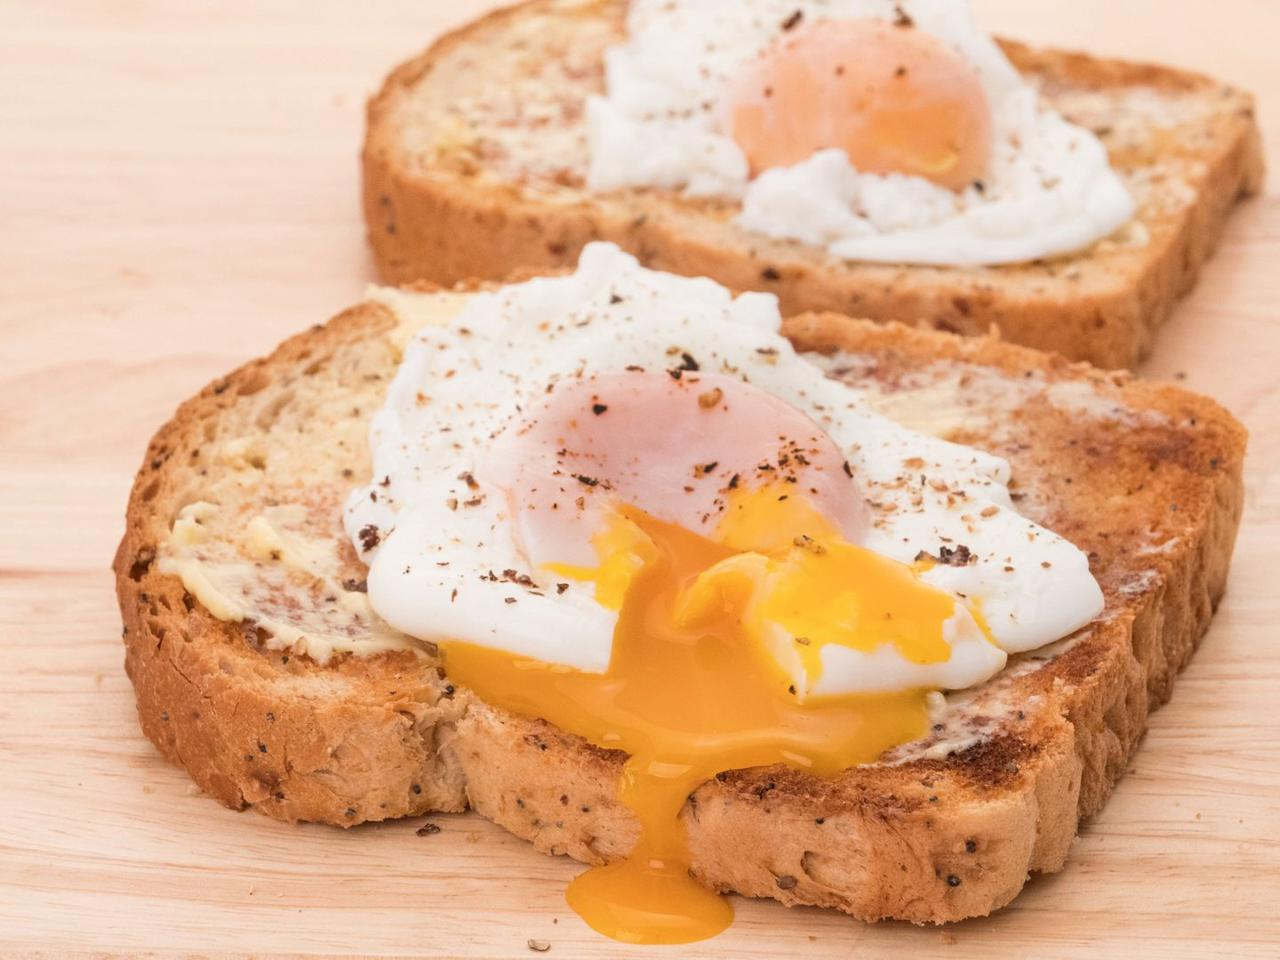 """<p>Hello, breakfast! Eggs are one of the most versatile <a href=""""https://www.goodhousekeeping.com/health/diet-nutrition/a48023/egg-nutrition/"""" target=""""_blank"""">(and healthy!</a>) kitchen staples you can have on hand, and they can also be made in four different ways in the microwave. Our Test Kitchen experts recount their favorite ways to whip up a plate of fluffy, creamy eggs in just a few minutes. Spoiler: You only need a few inches of water for perfectly poached eggs.</p><p><em><a href=""""https://www.goodhousekeeping.com/food-recipes/cooking/tips/a32091/how-to-microwave-eggs/"""" target=""""_blank"""">Learn how to cook eggs in the microwave »</a></em><strong><em></em></strong></p><p><strong>RELATED</strong>: <a href=""""https://www.goodhousekeeping.com/food-recipes/easy/g428/easy-egg-recipes/"""" target=""""_blank"""">45 Easy Egg Recipes for Your Best Brunch Ever</a></p>"""